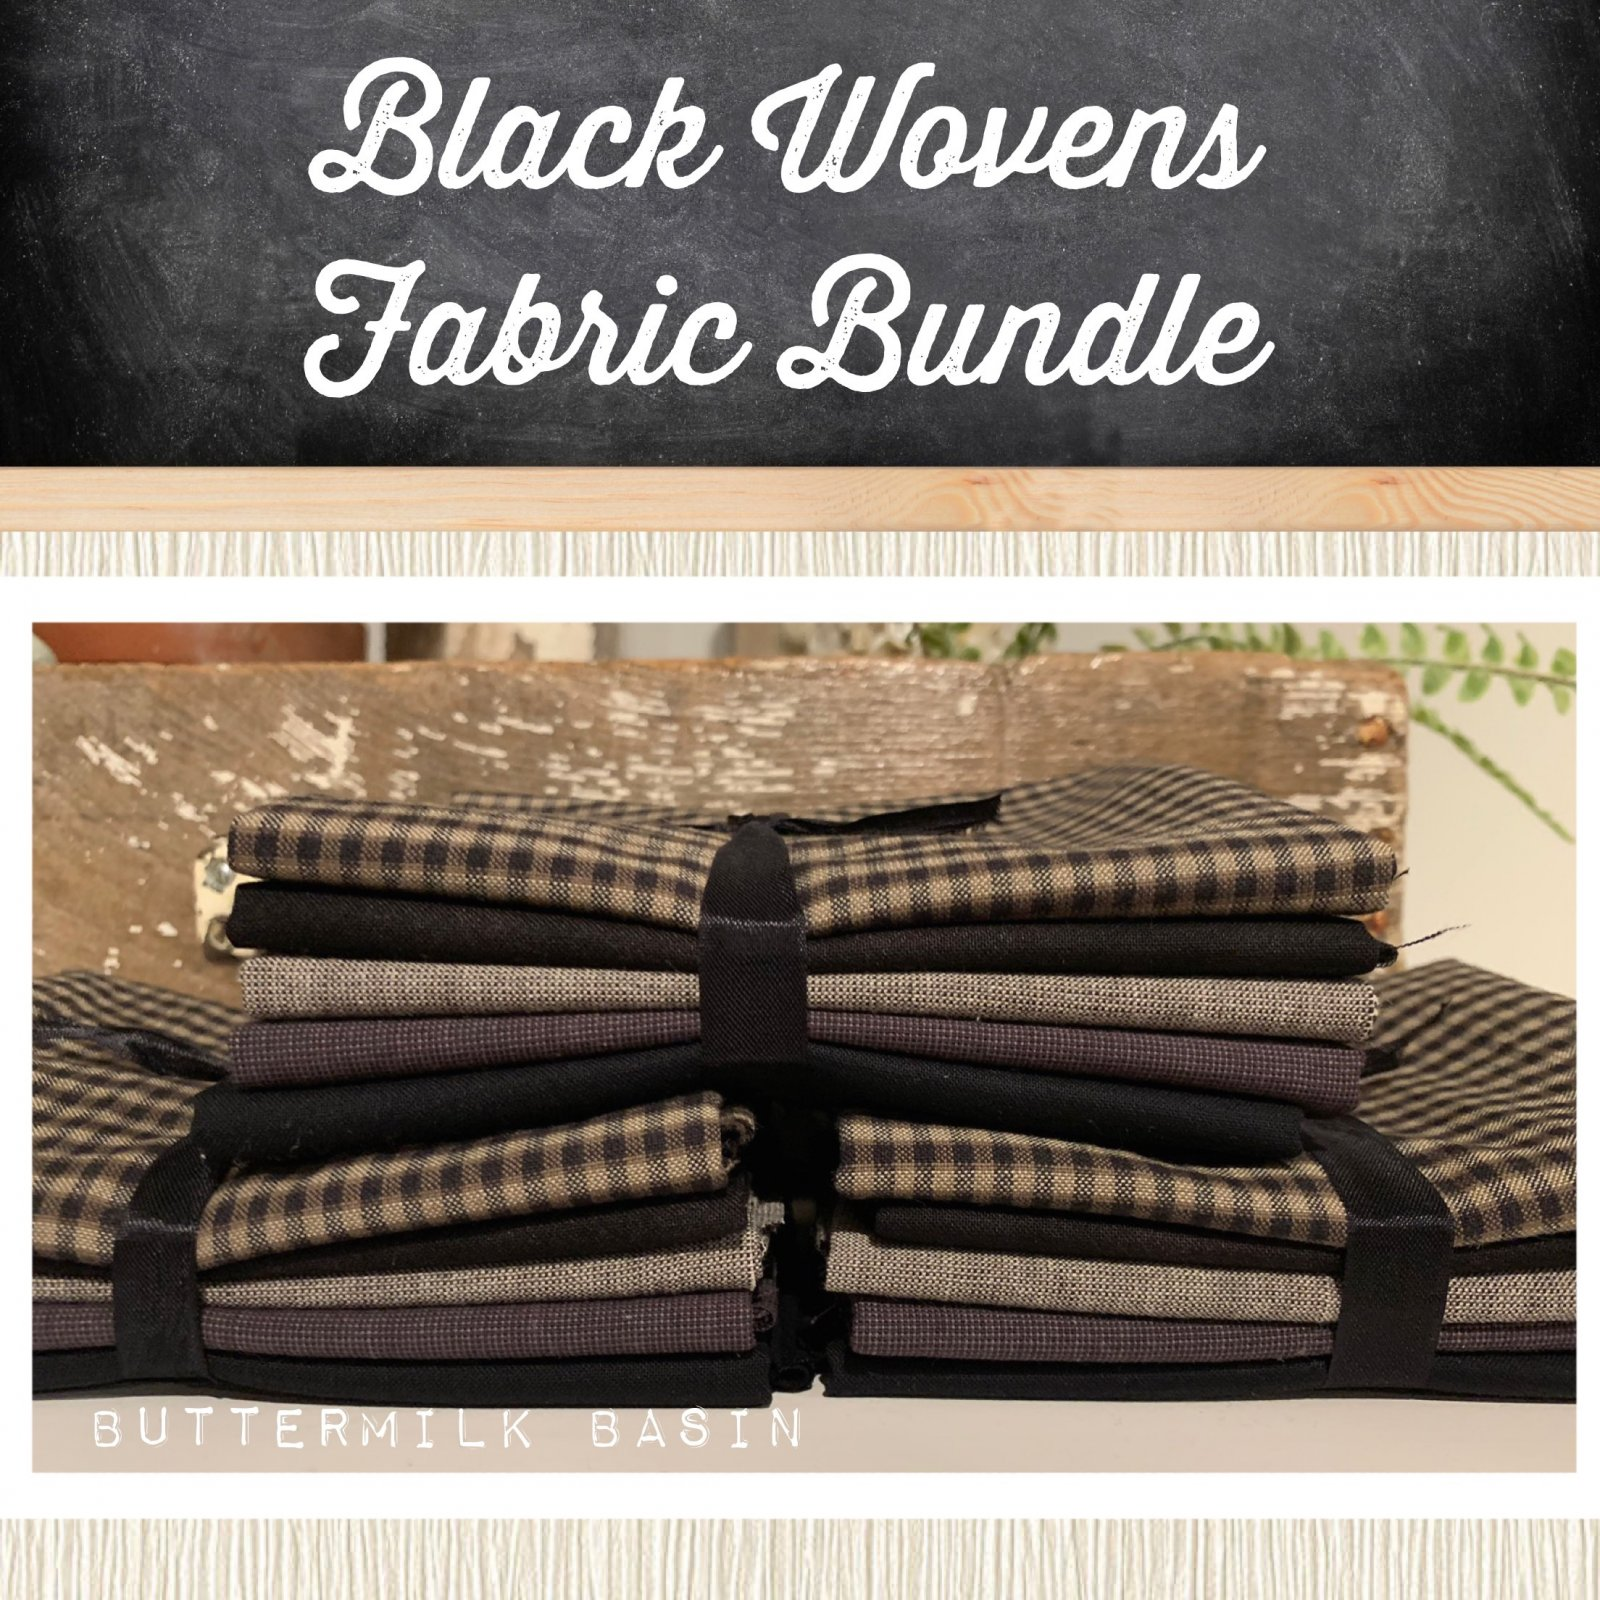 Black Wovens Fabric Bundle